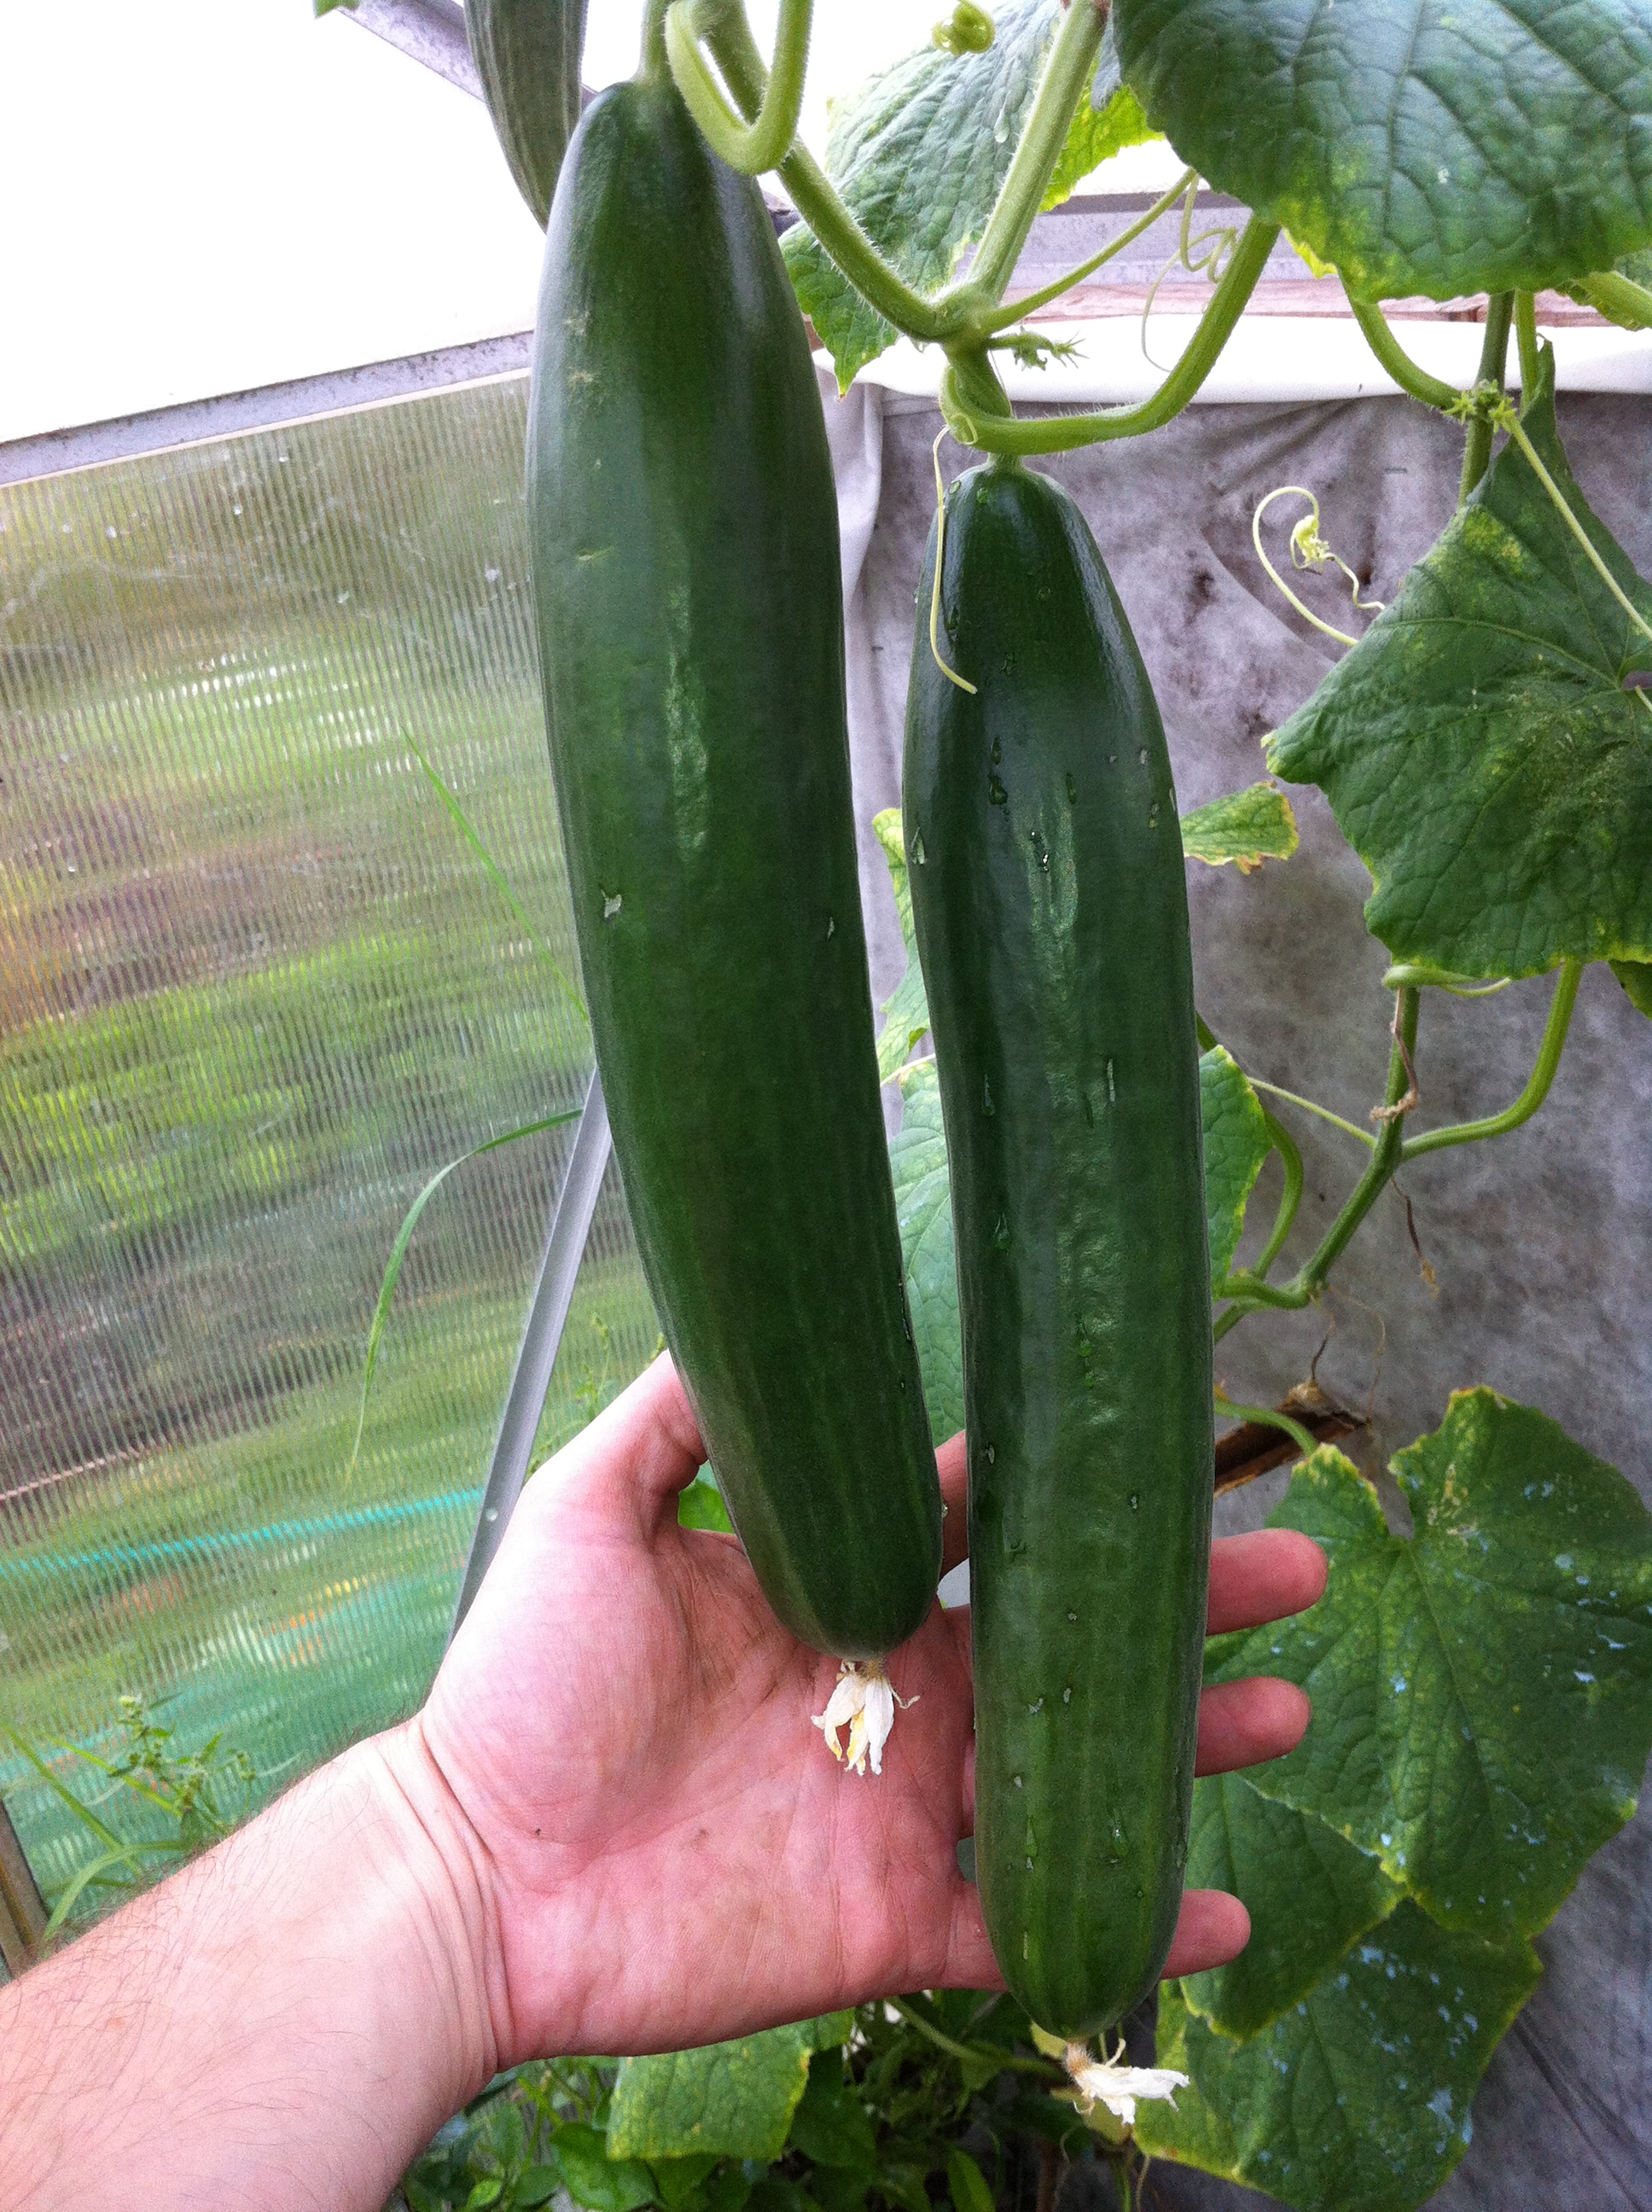 How long does it take for cucumbers to mature #5